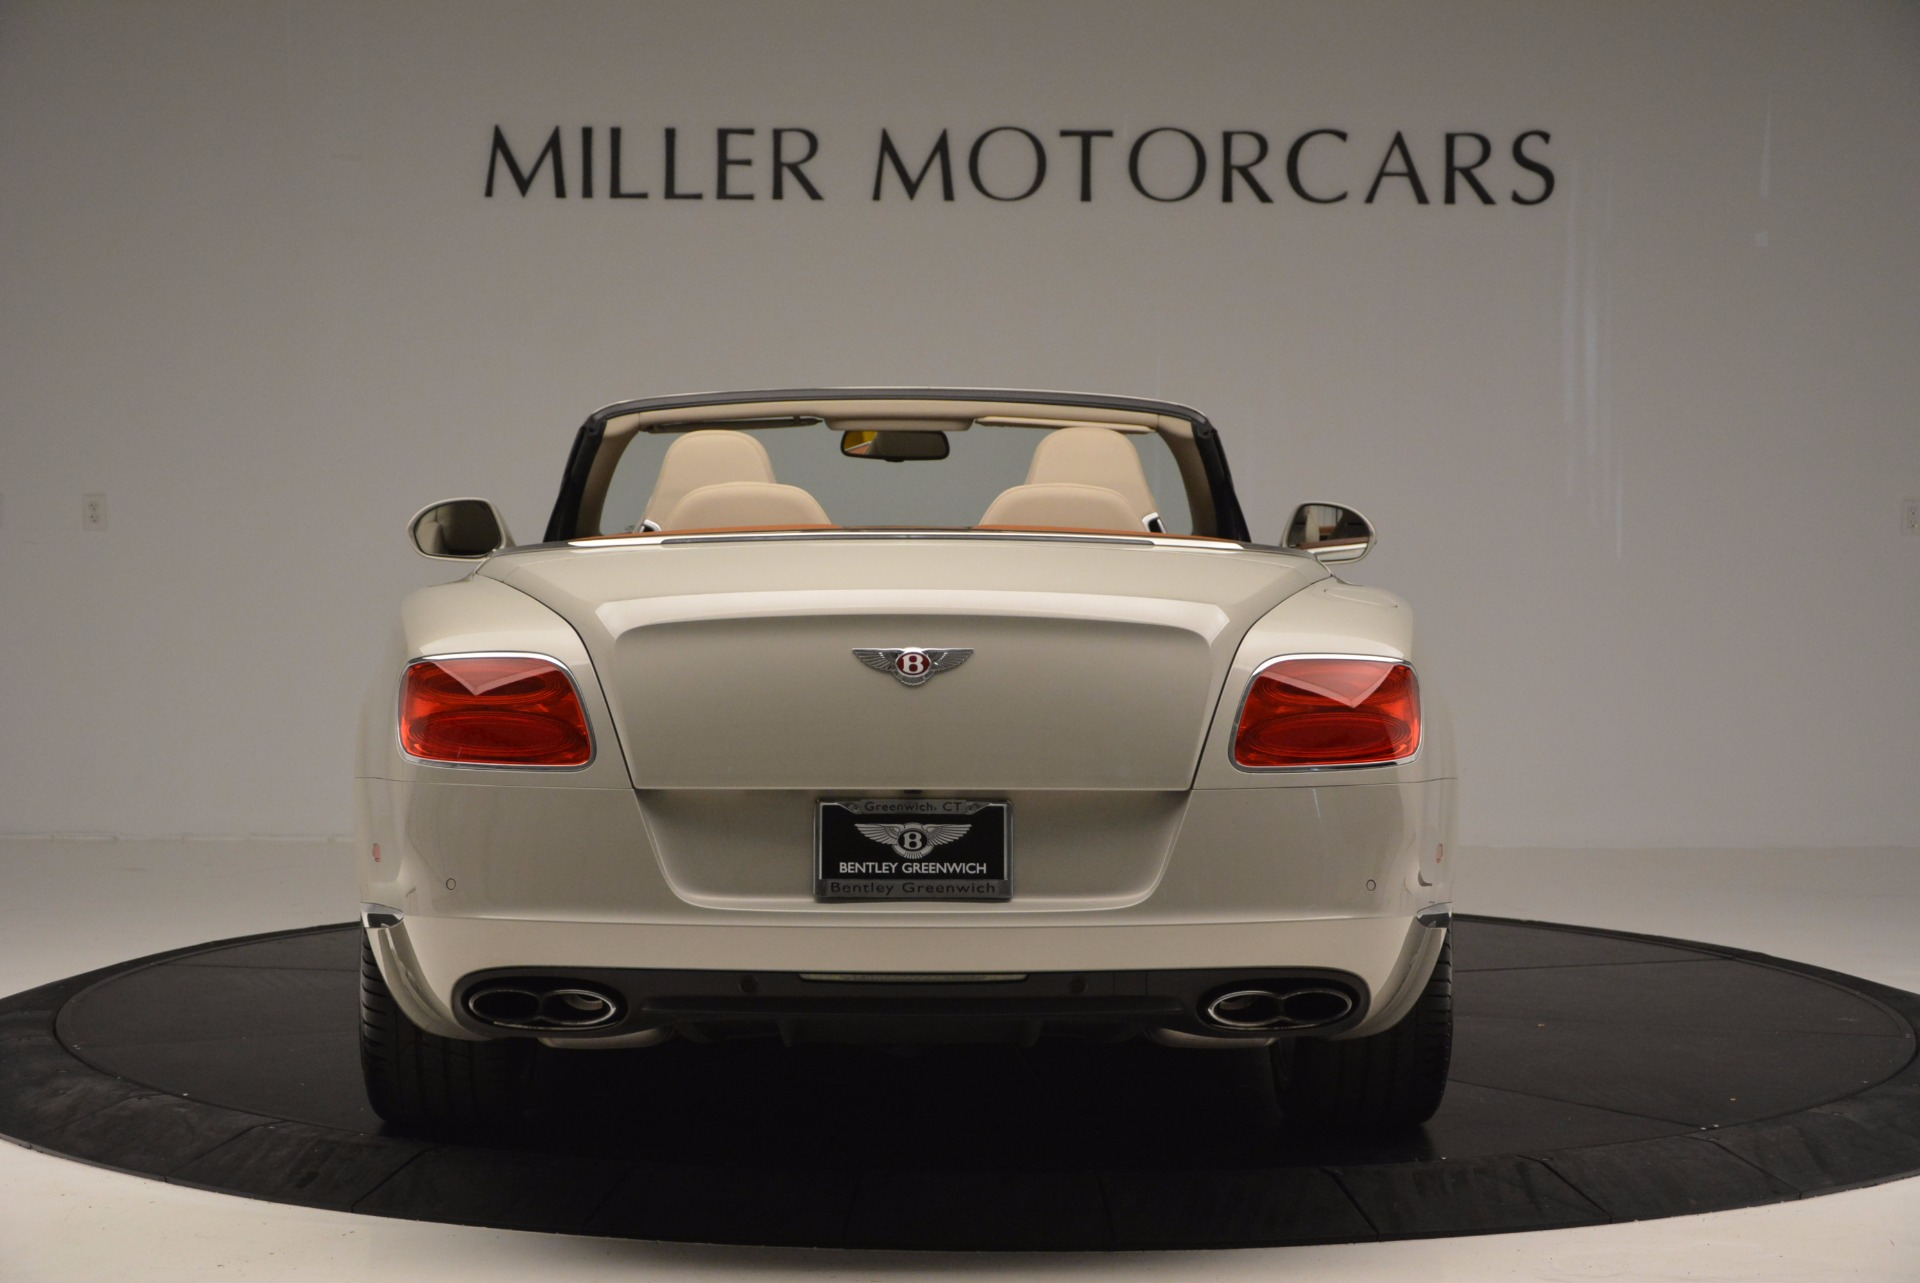 Used 2013 Bentley Continental GTC V8  For Sale In Greenwich, CT. Alfa Romeo of Greenwich, 7108 675_p6